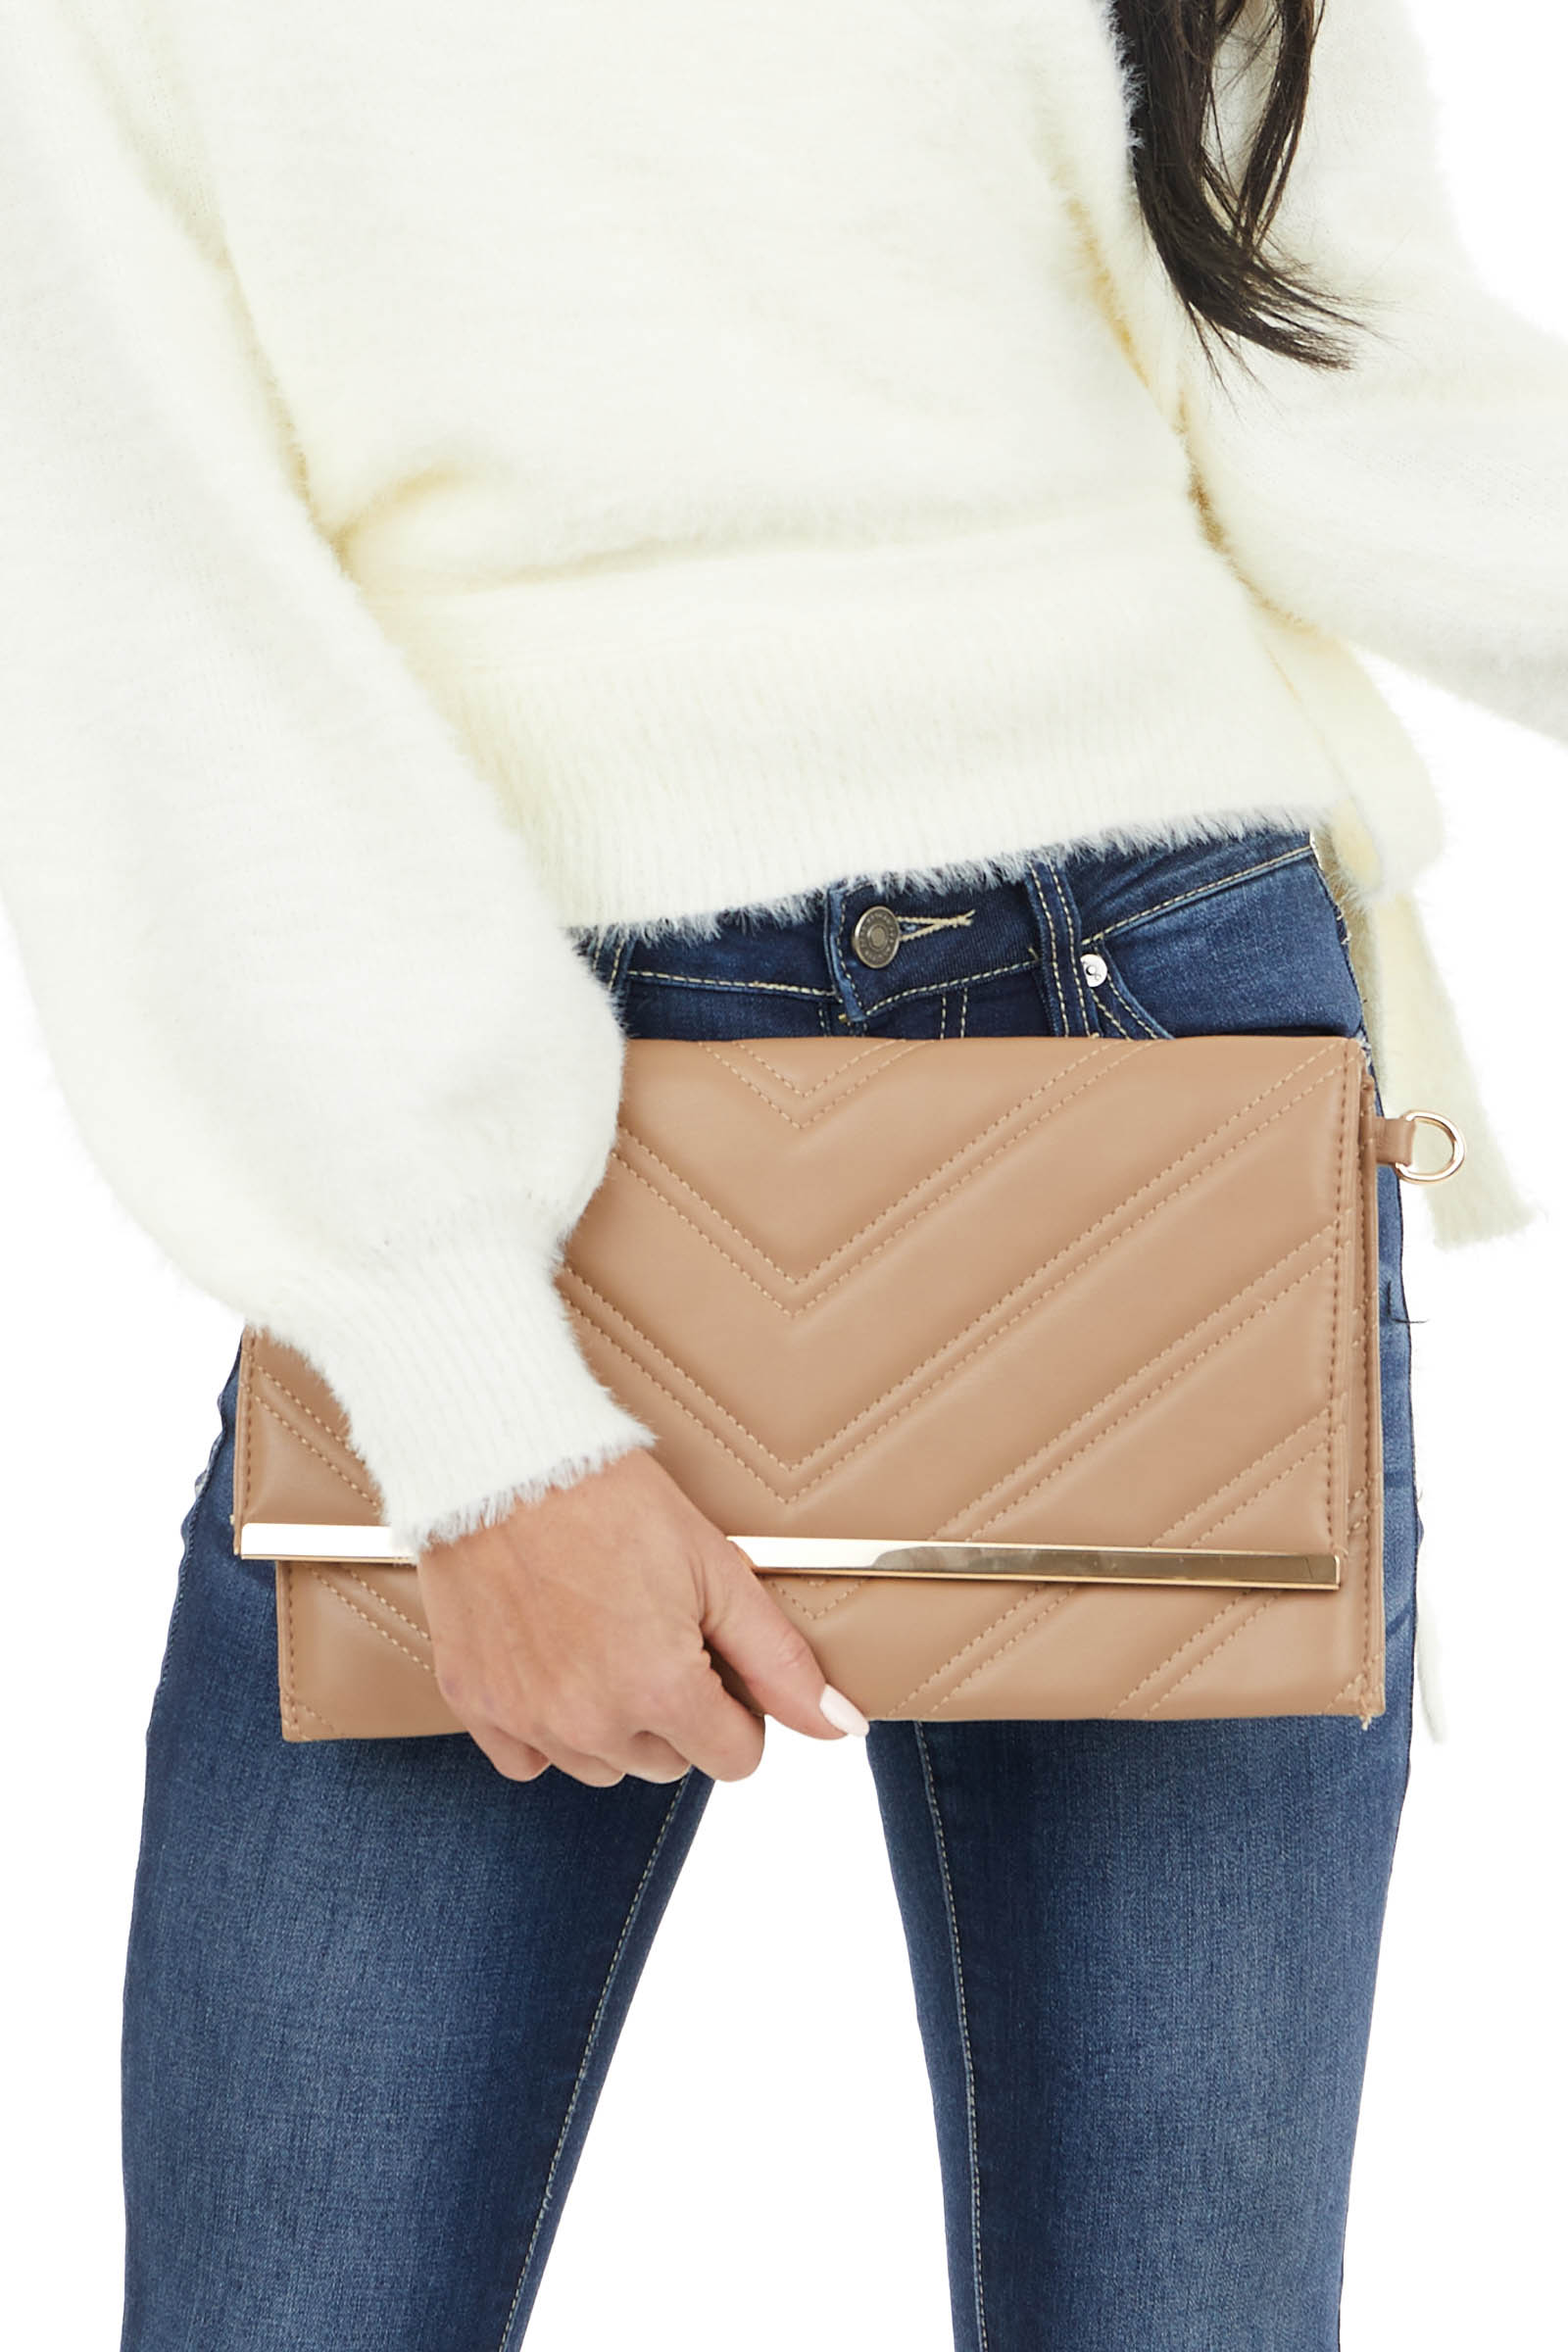 Latte Faux Leather Quilted Chevron Pattern Cross Body Bag